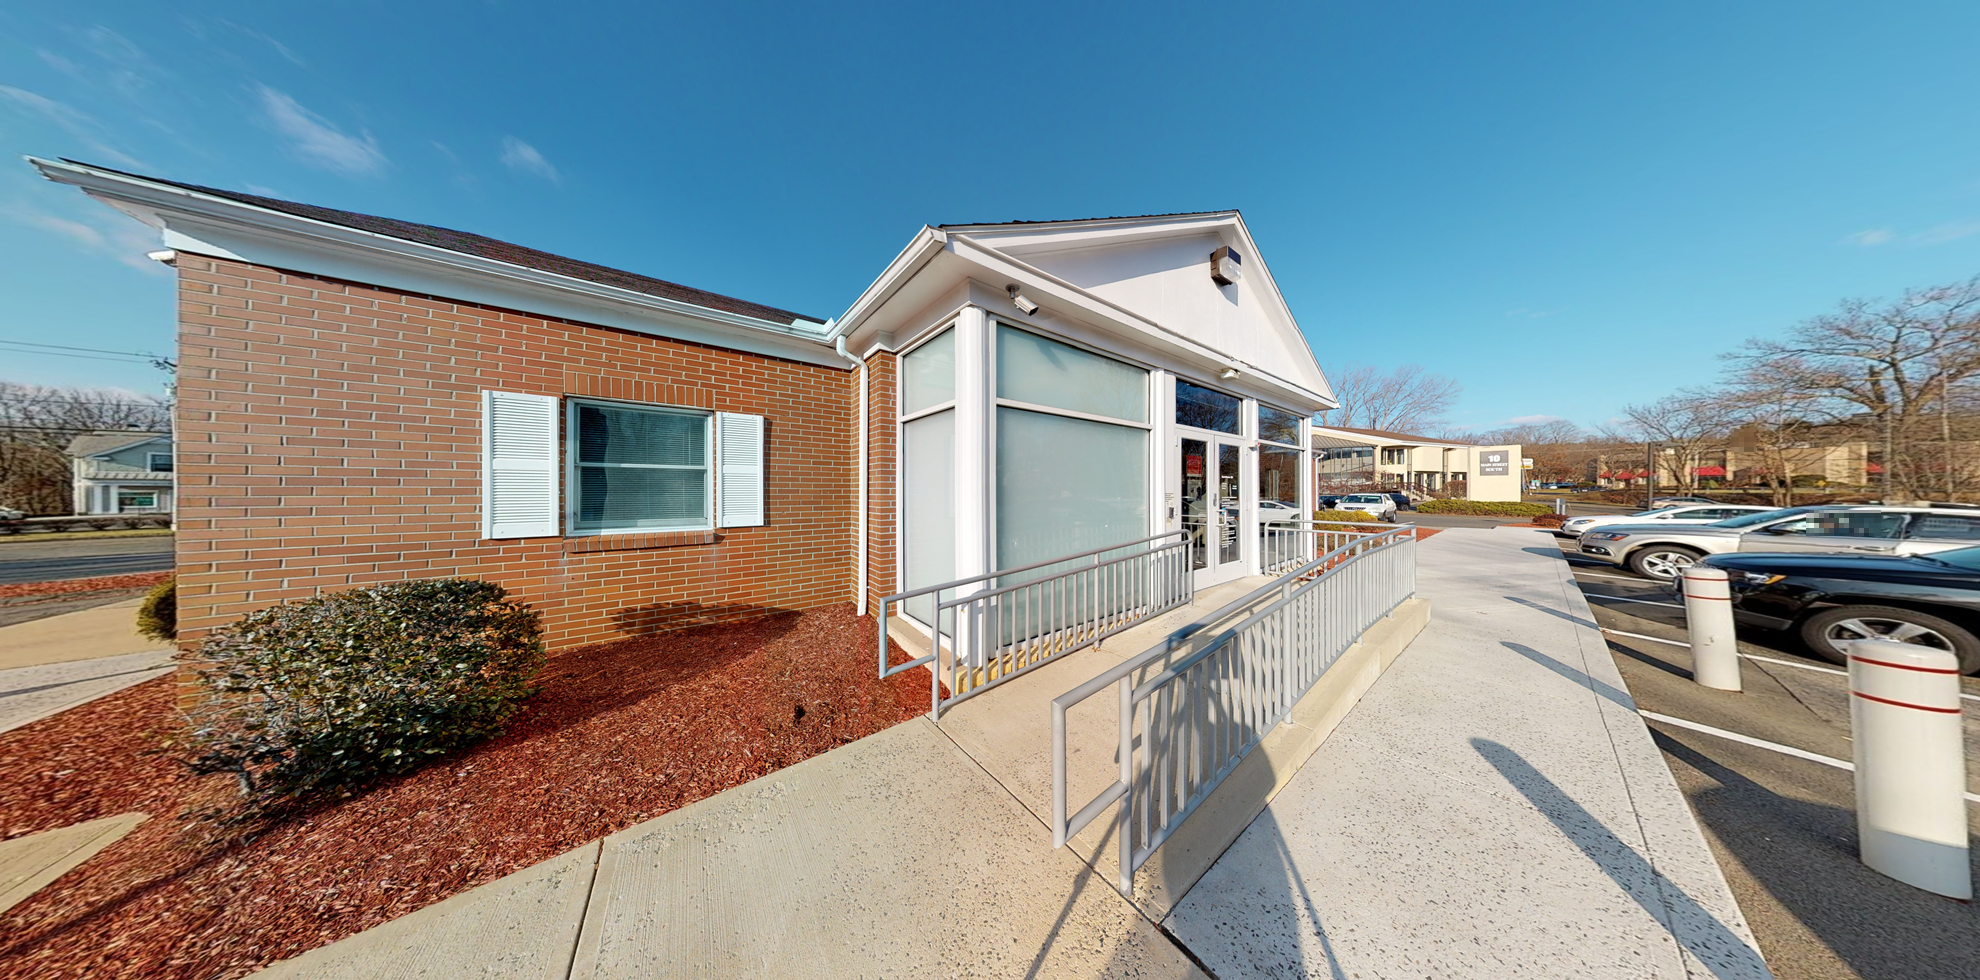 Bank of America financial center with drive-thru ATM | 12 Main St S, Southbury, CT 06488